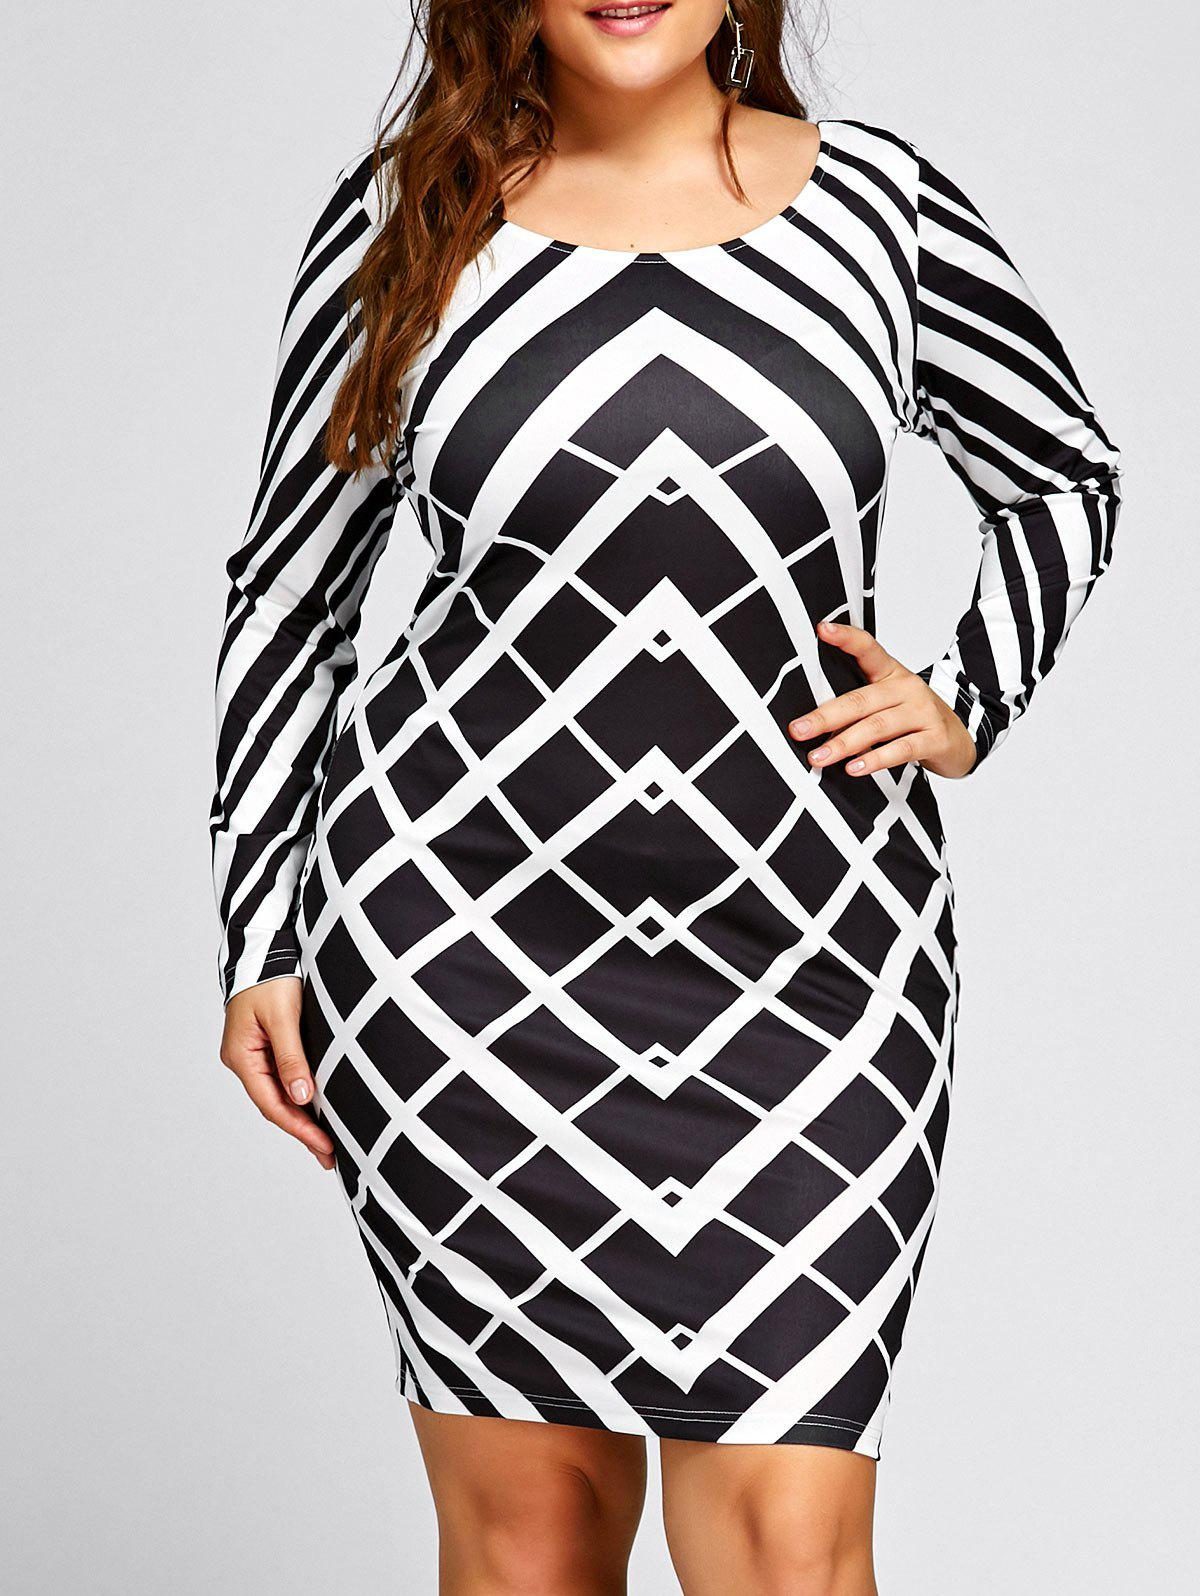 Plus Size Long Sleeve Geometric Print DressWOMEN<br><br>Size: 3XL; Color: WHITE AND BLACK; Style: Brief; Material: Polyester,Spandex; Silhouette: Bodycon; Dresses Length: Mini; Neckline: Scoop Neck; Sleeve Length: Long Sleeves; Pattern Type: Geometric; With Belt: No; Season: Fall,Spring; Weight: 0.2990kg; Package Contents: 1 x Dress;